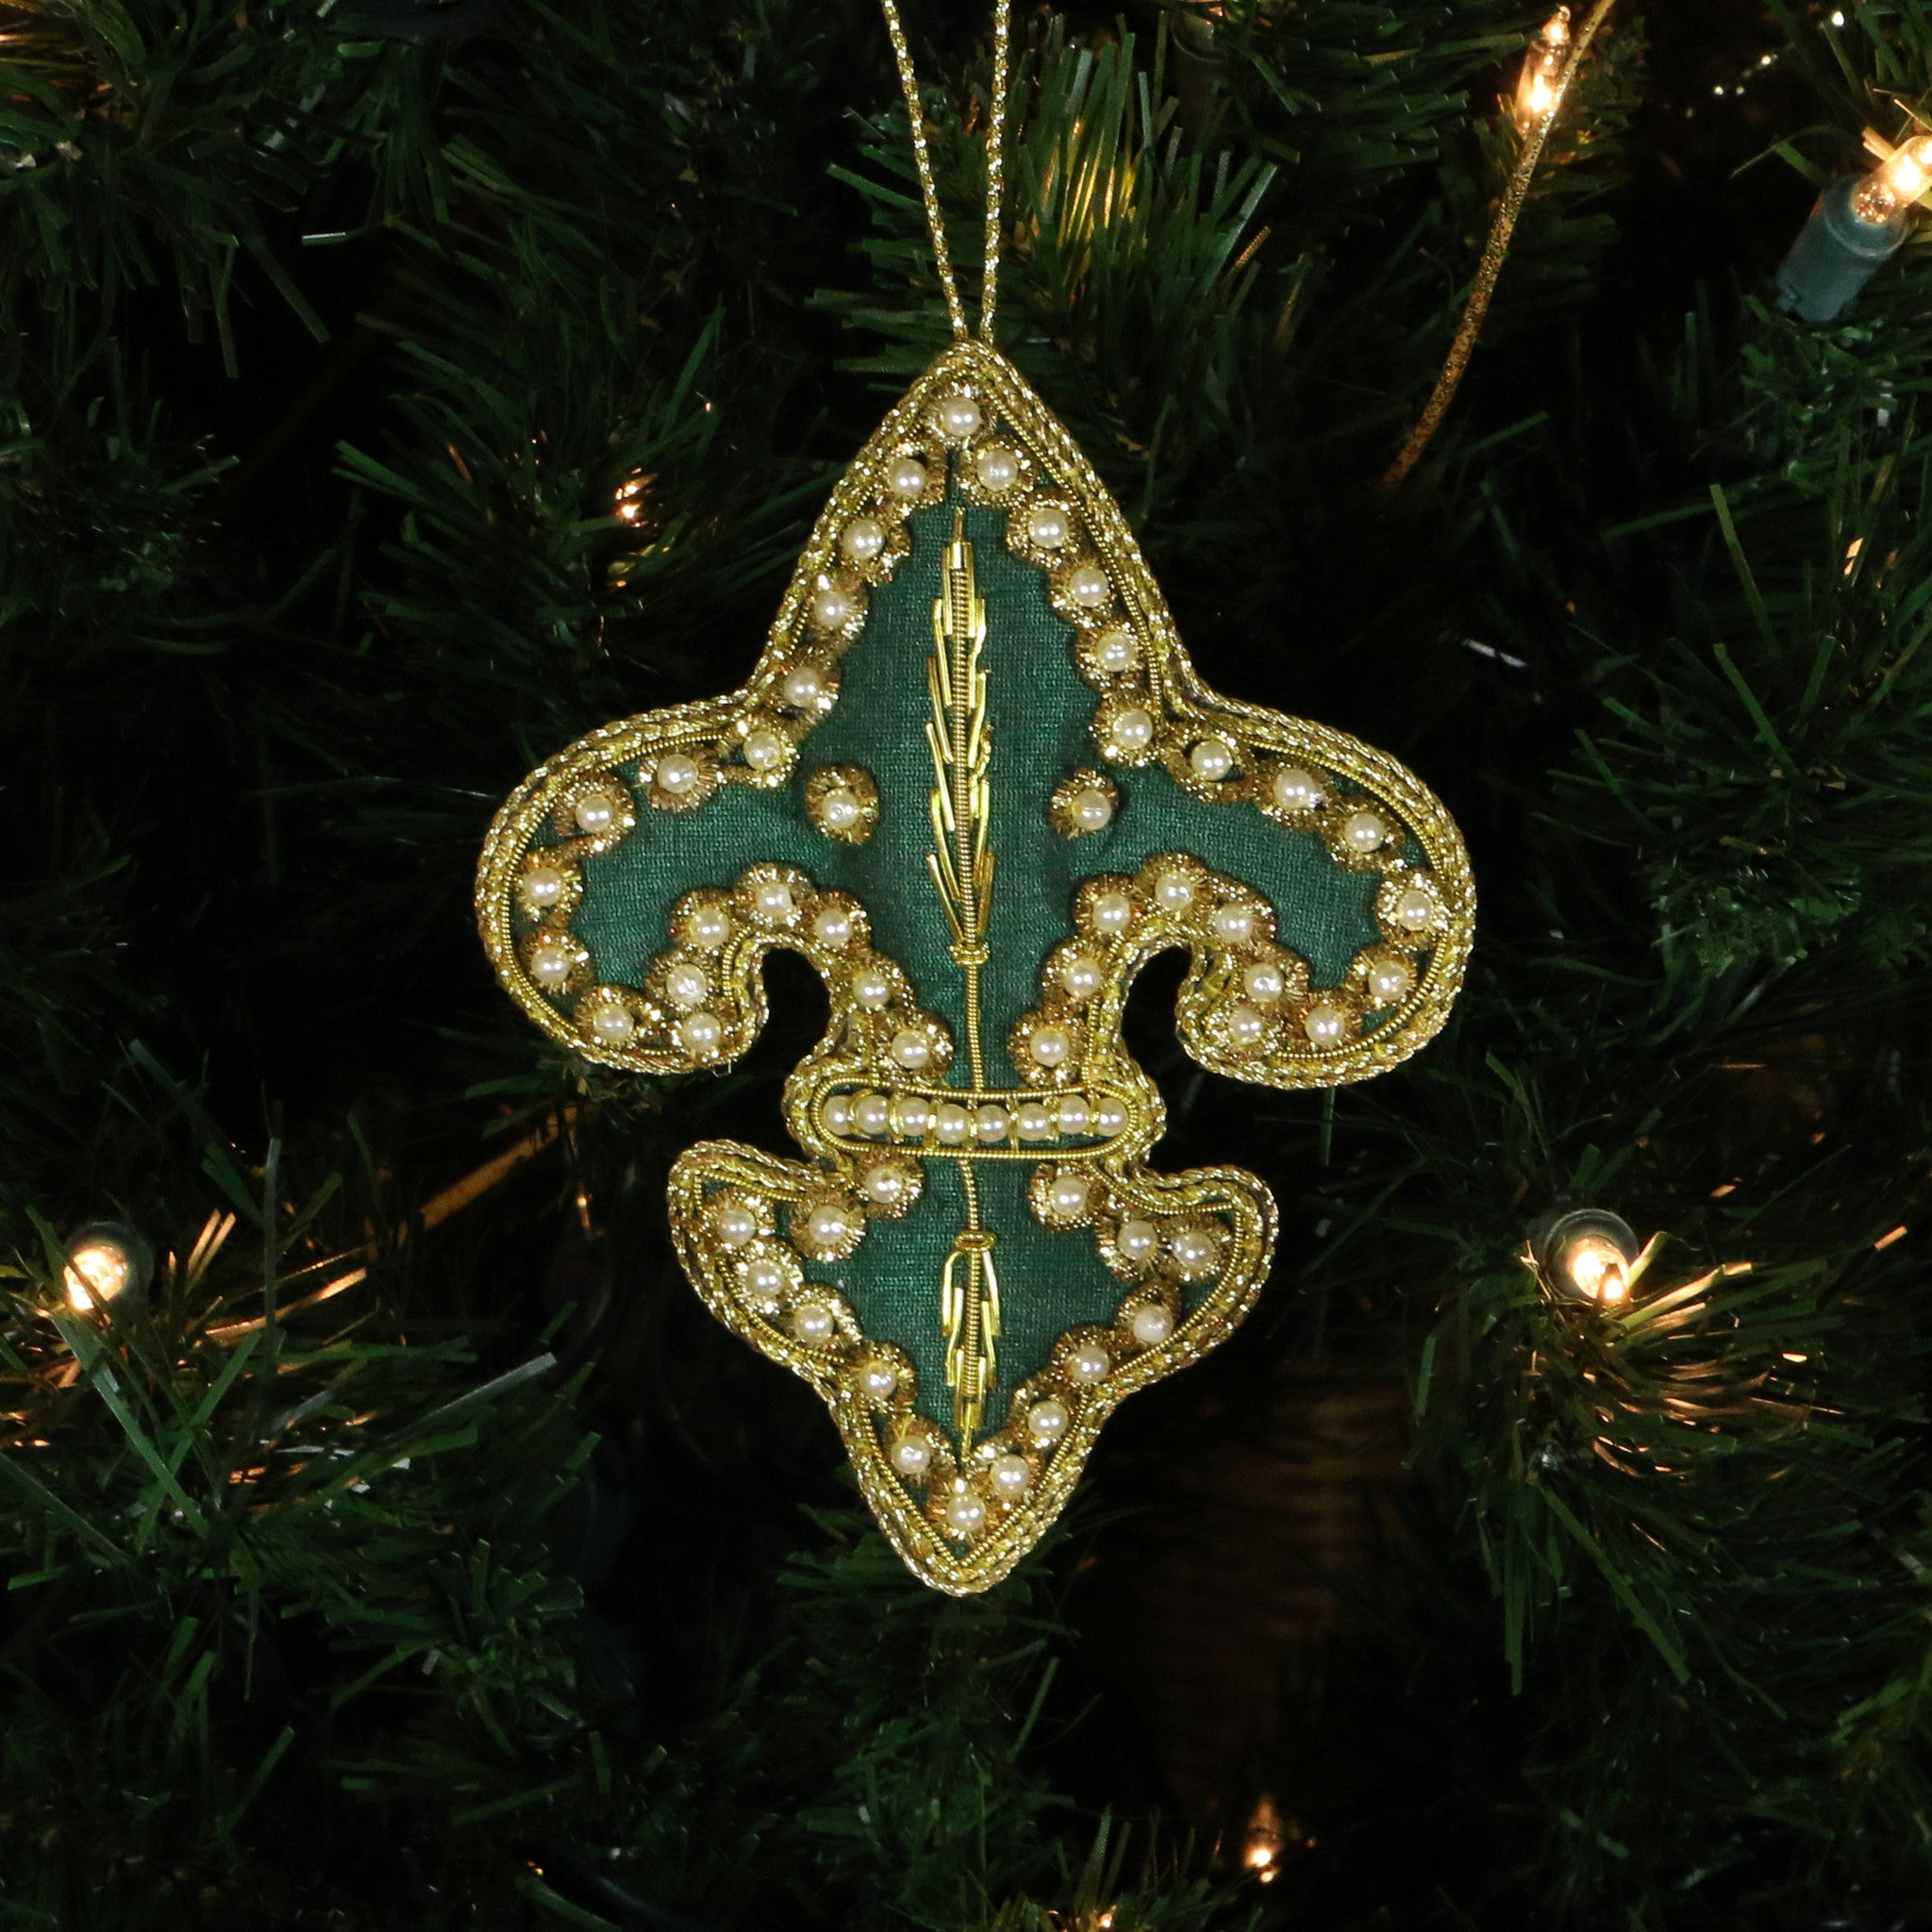 Hand Beaded, Fleur de lis Shaped Ornament (green color)